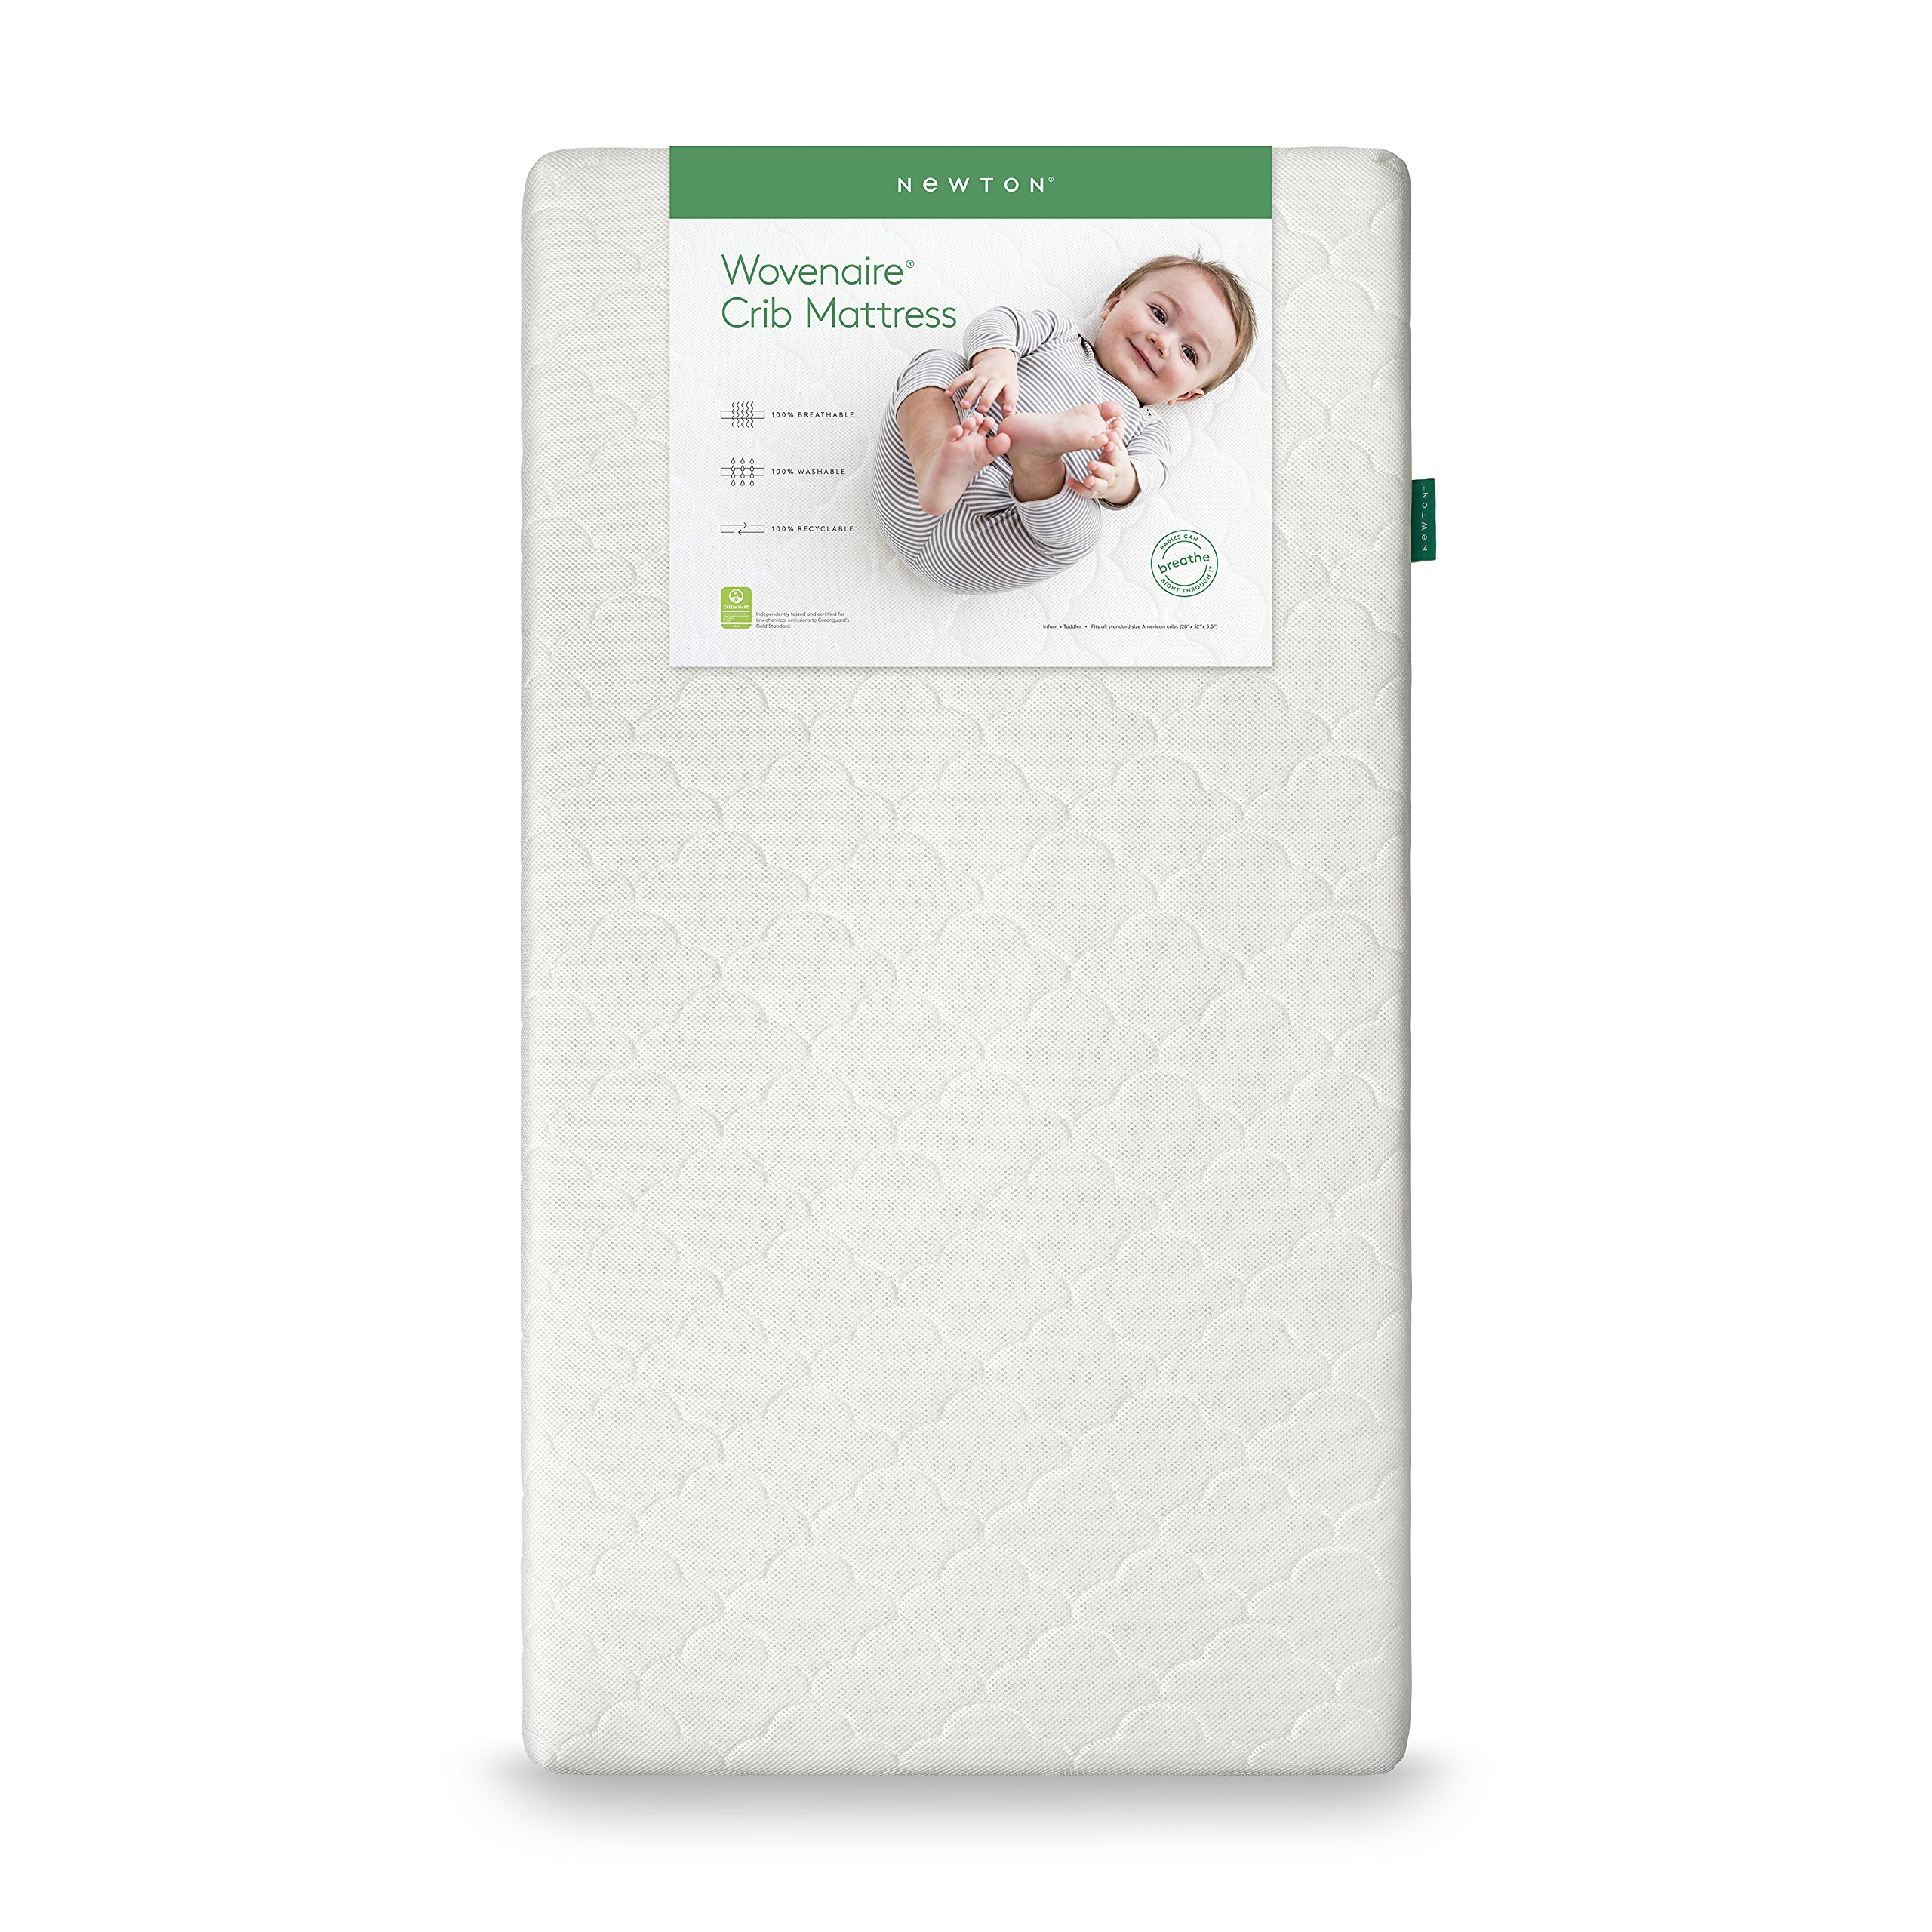 standard serta mattresses the view l mattress for size of cheapest baby tempurpedic larger crib